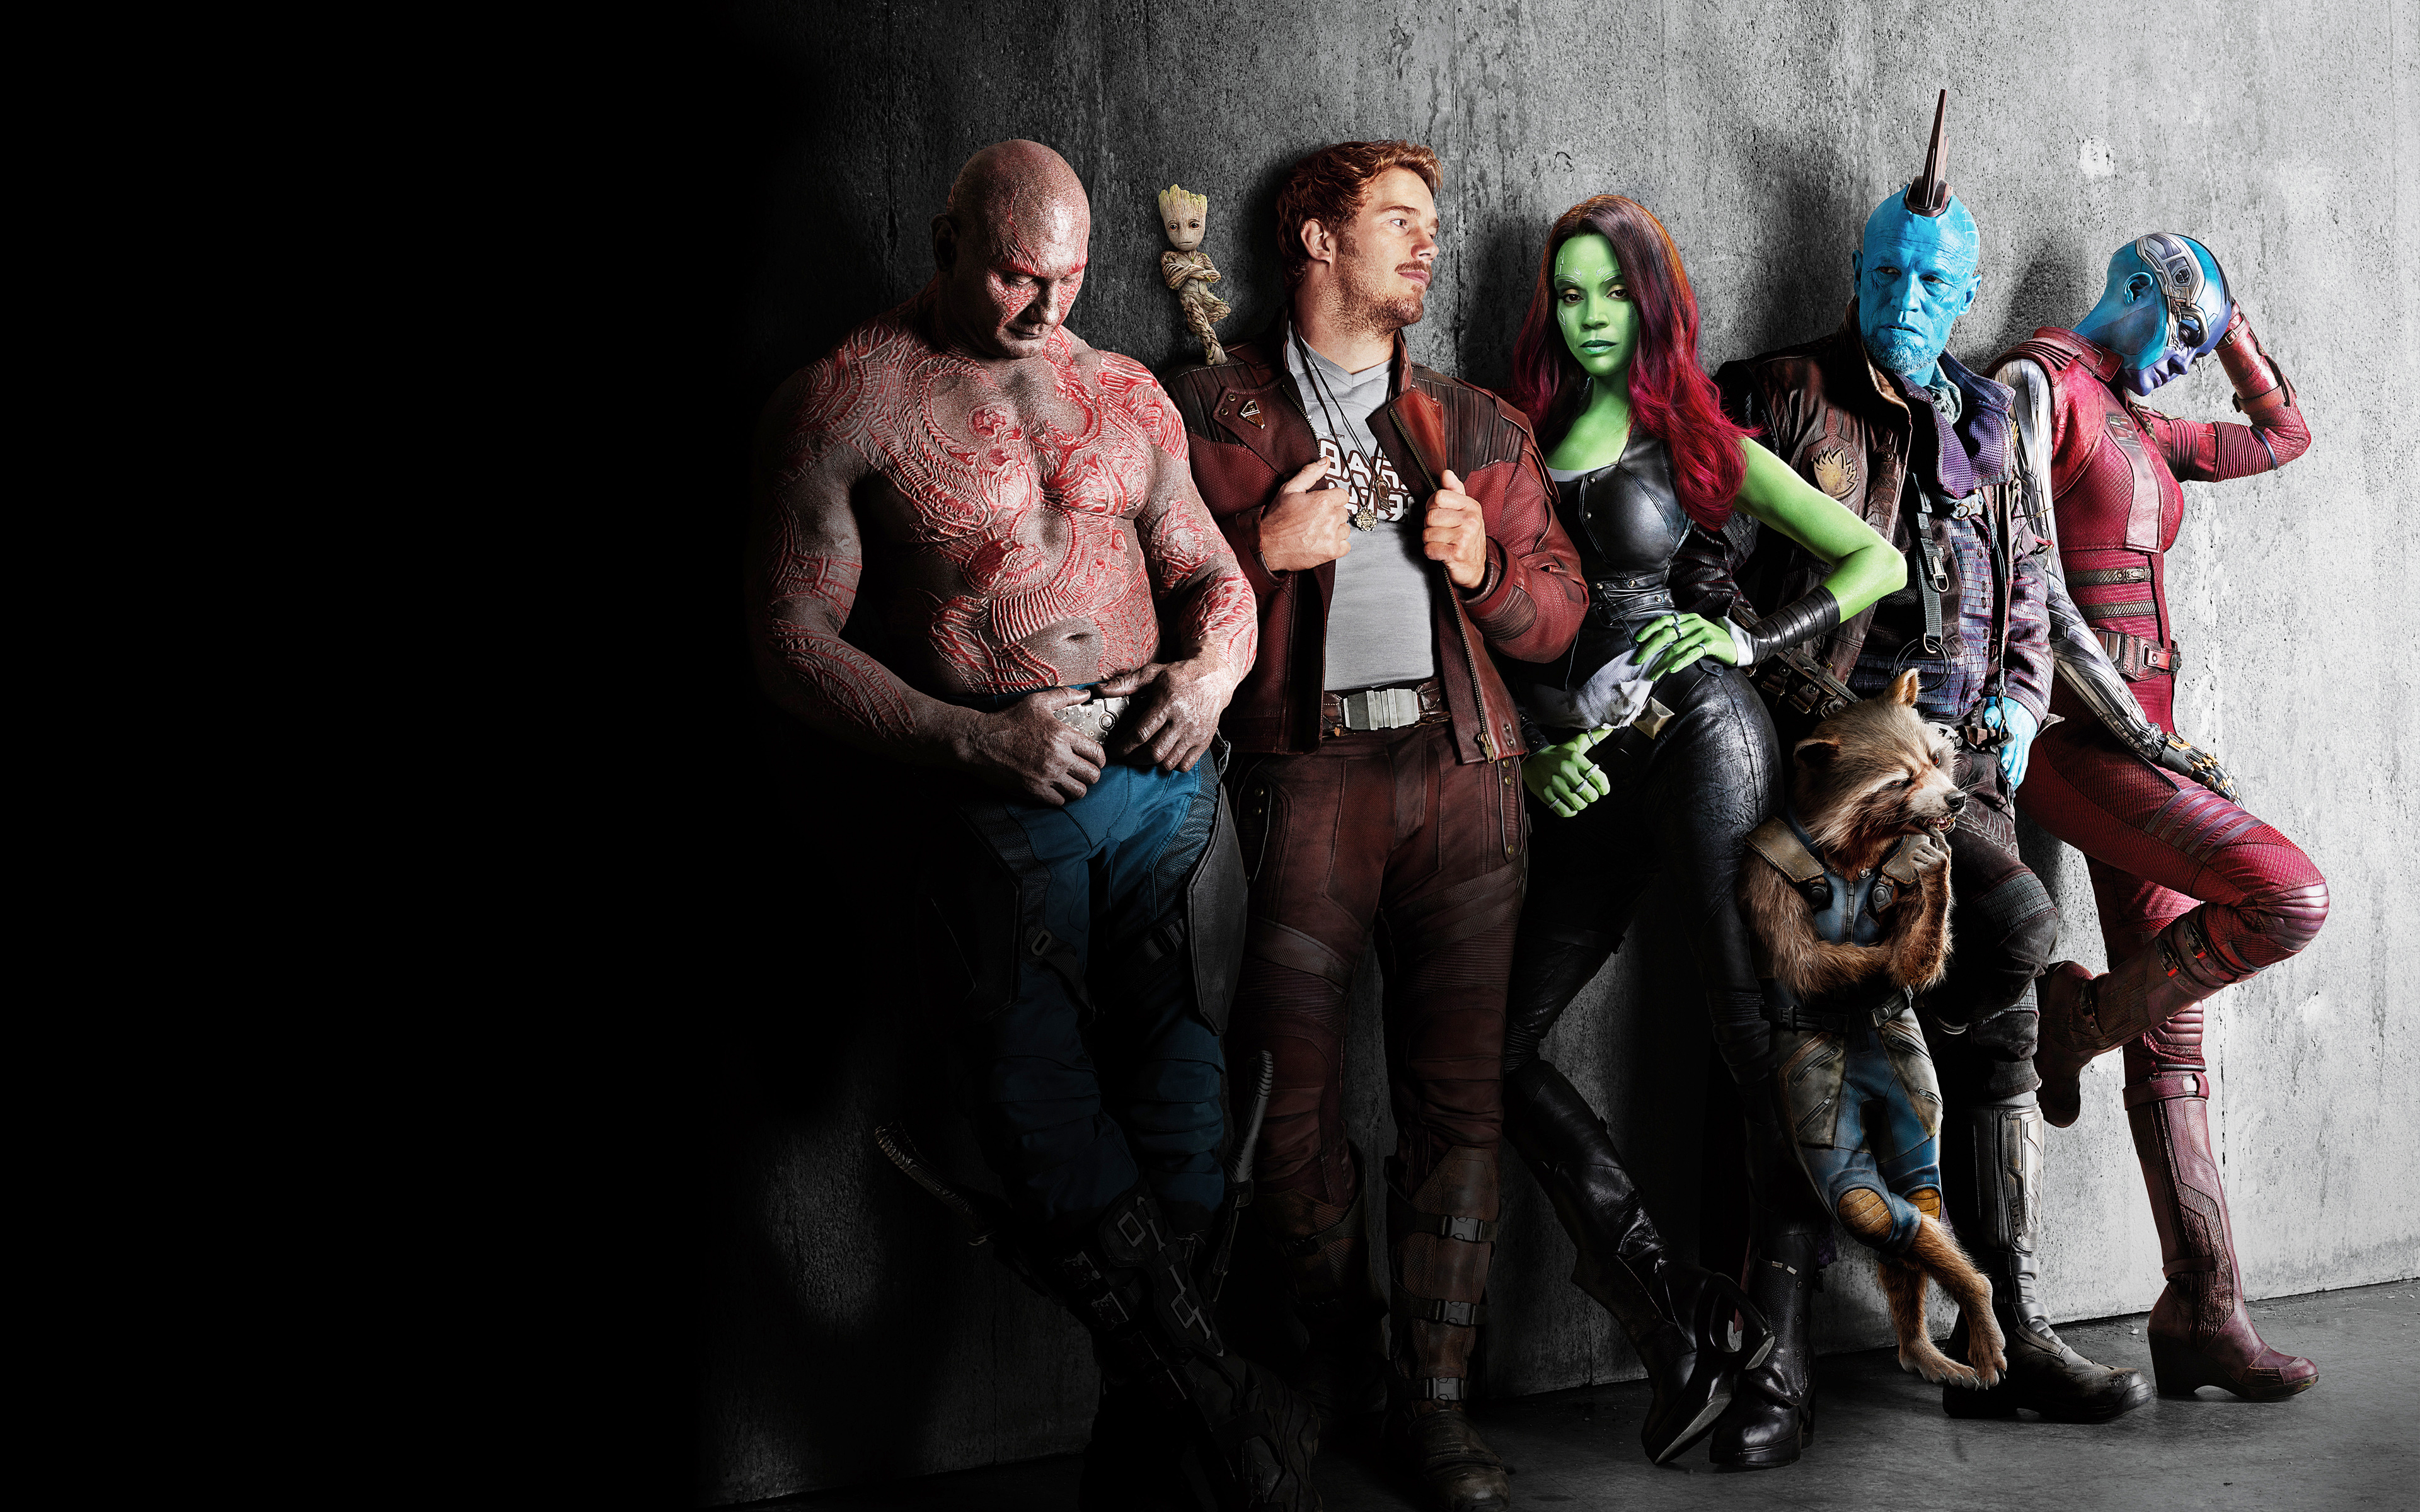 Guardians Of The Galaxy Hd Wallpaper Posted By Ryan Thompson